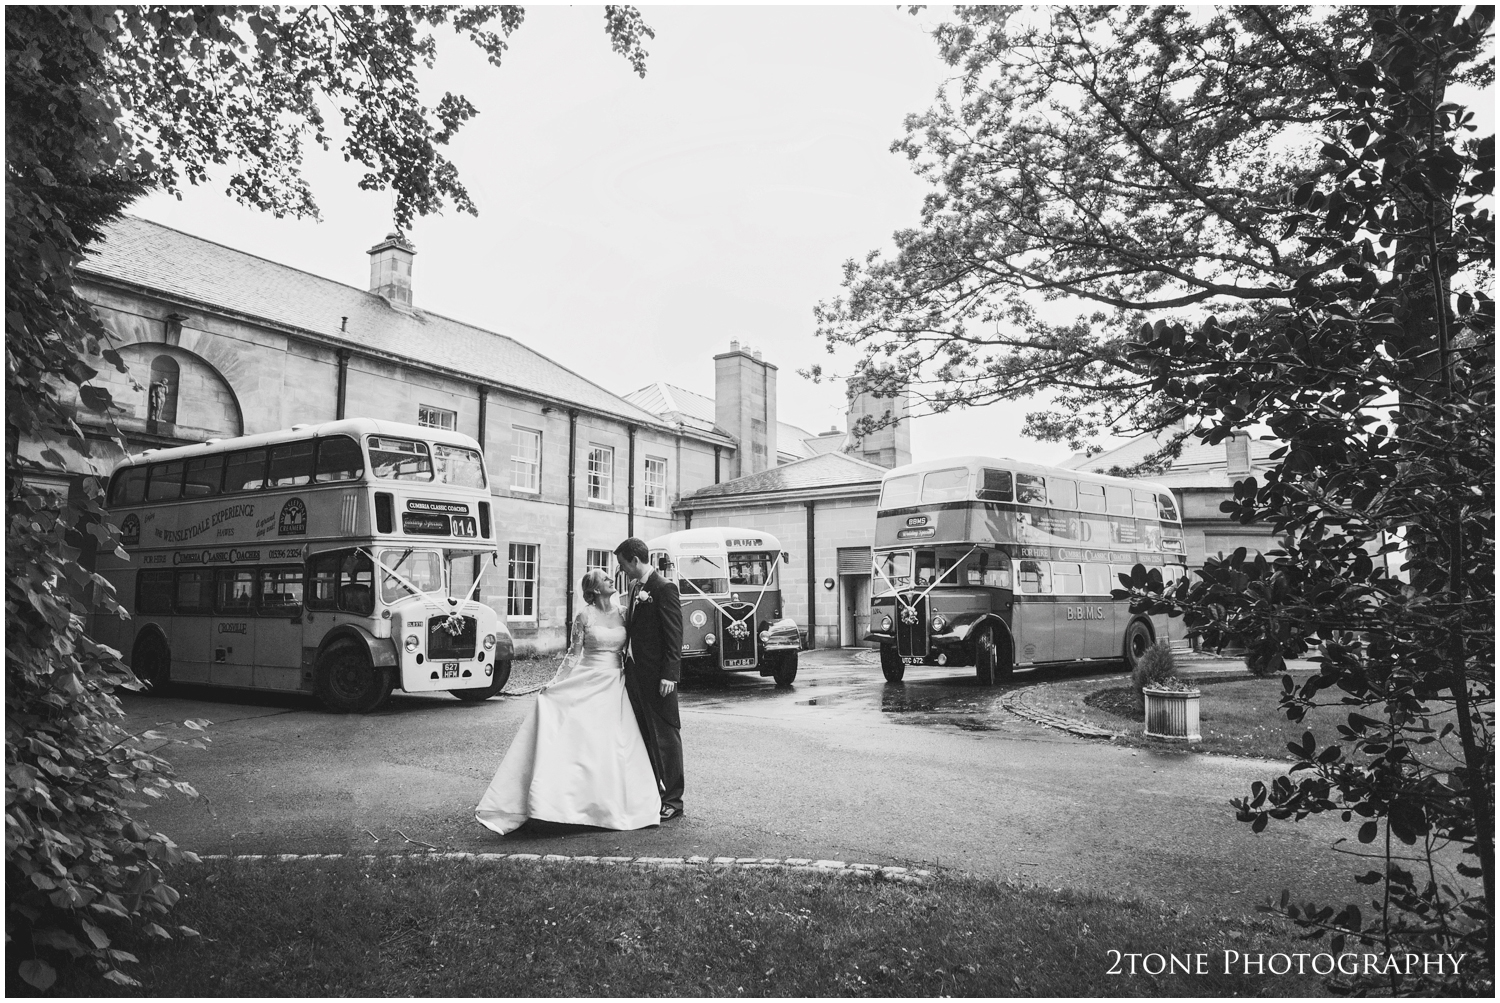 A special request and a quick dash outside to capture Kristen and Innes with the vintage wedding coaches.